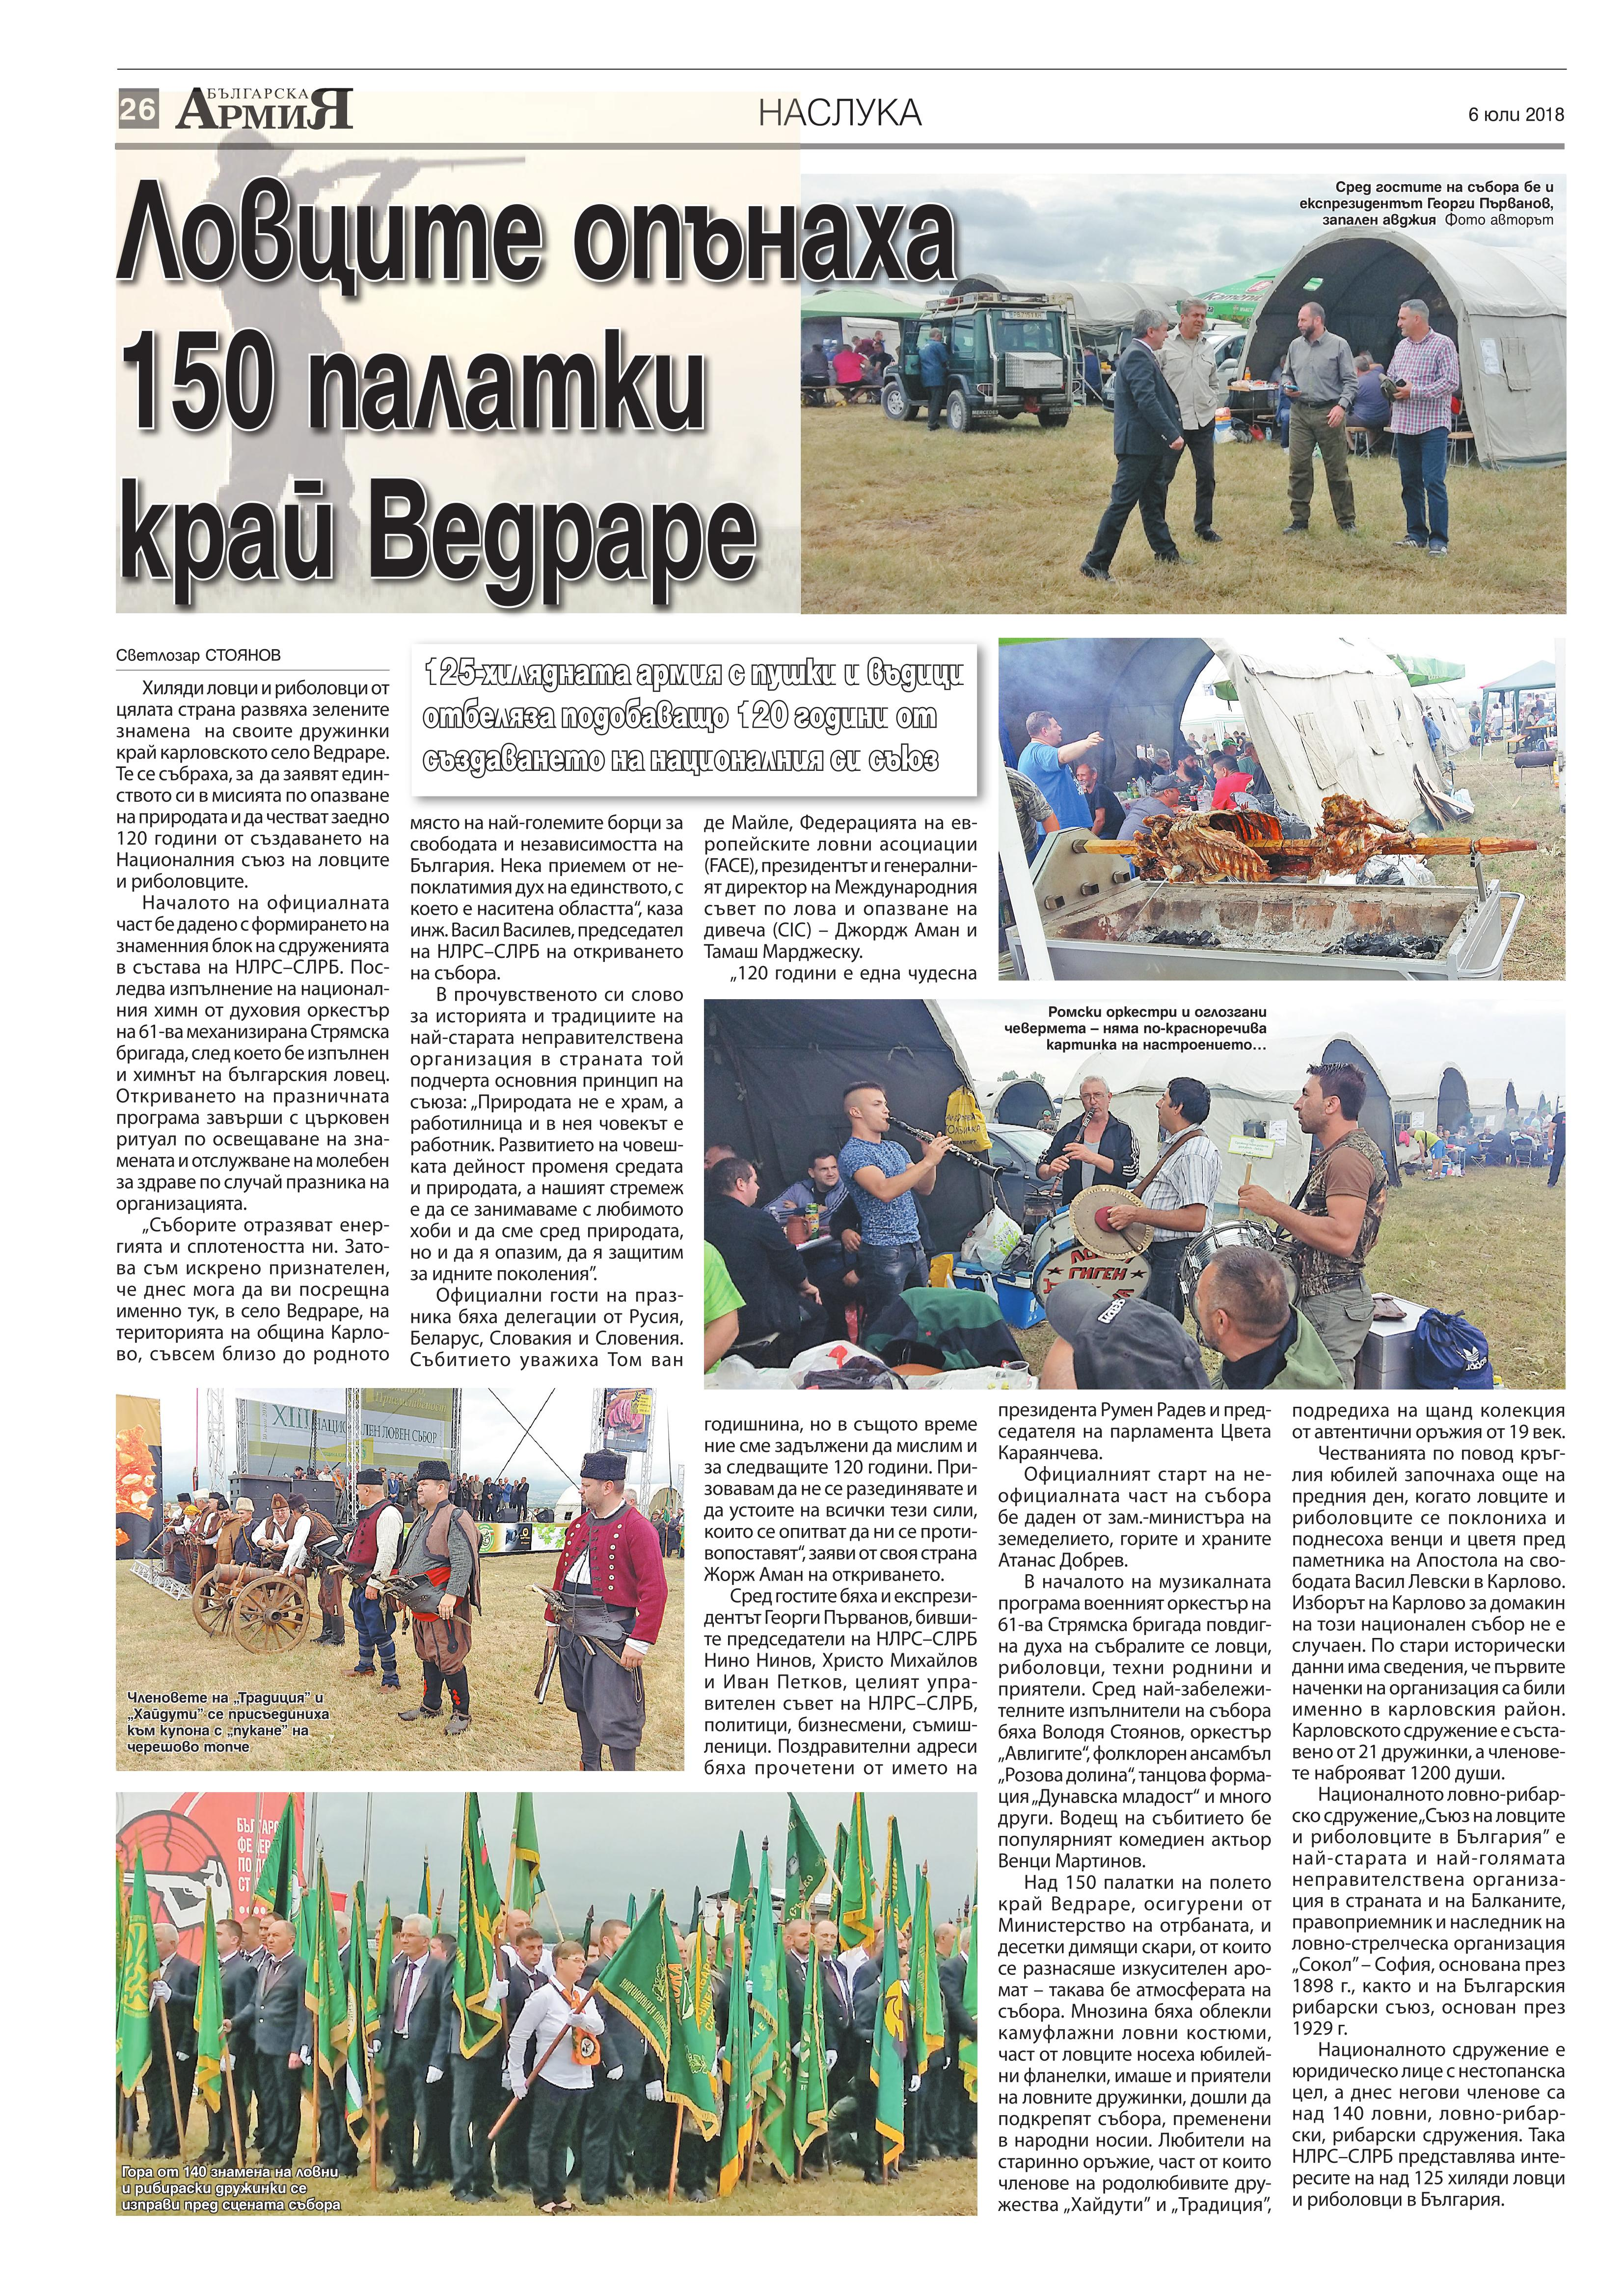 https://armymedia.bg/wp-content/uploads/2015/06/26.page1_-50.jpg